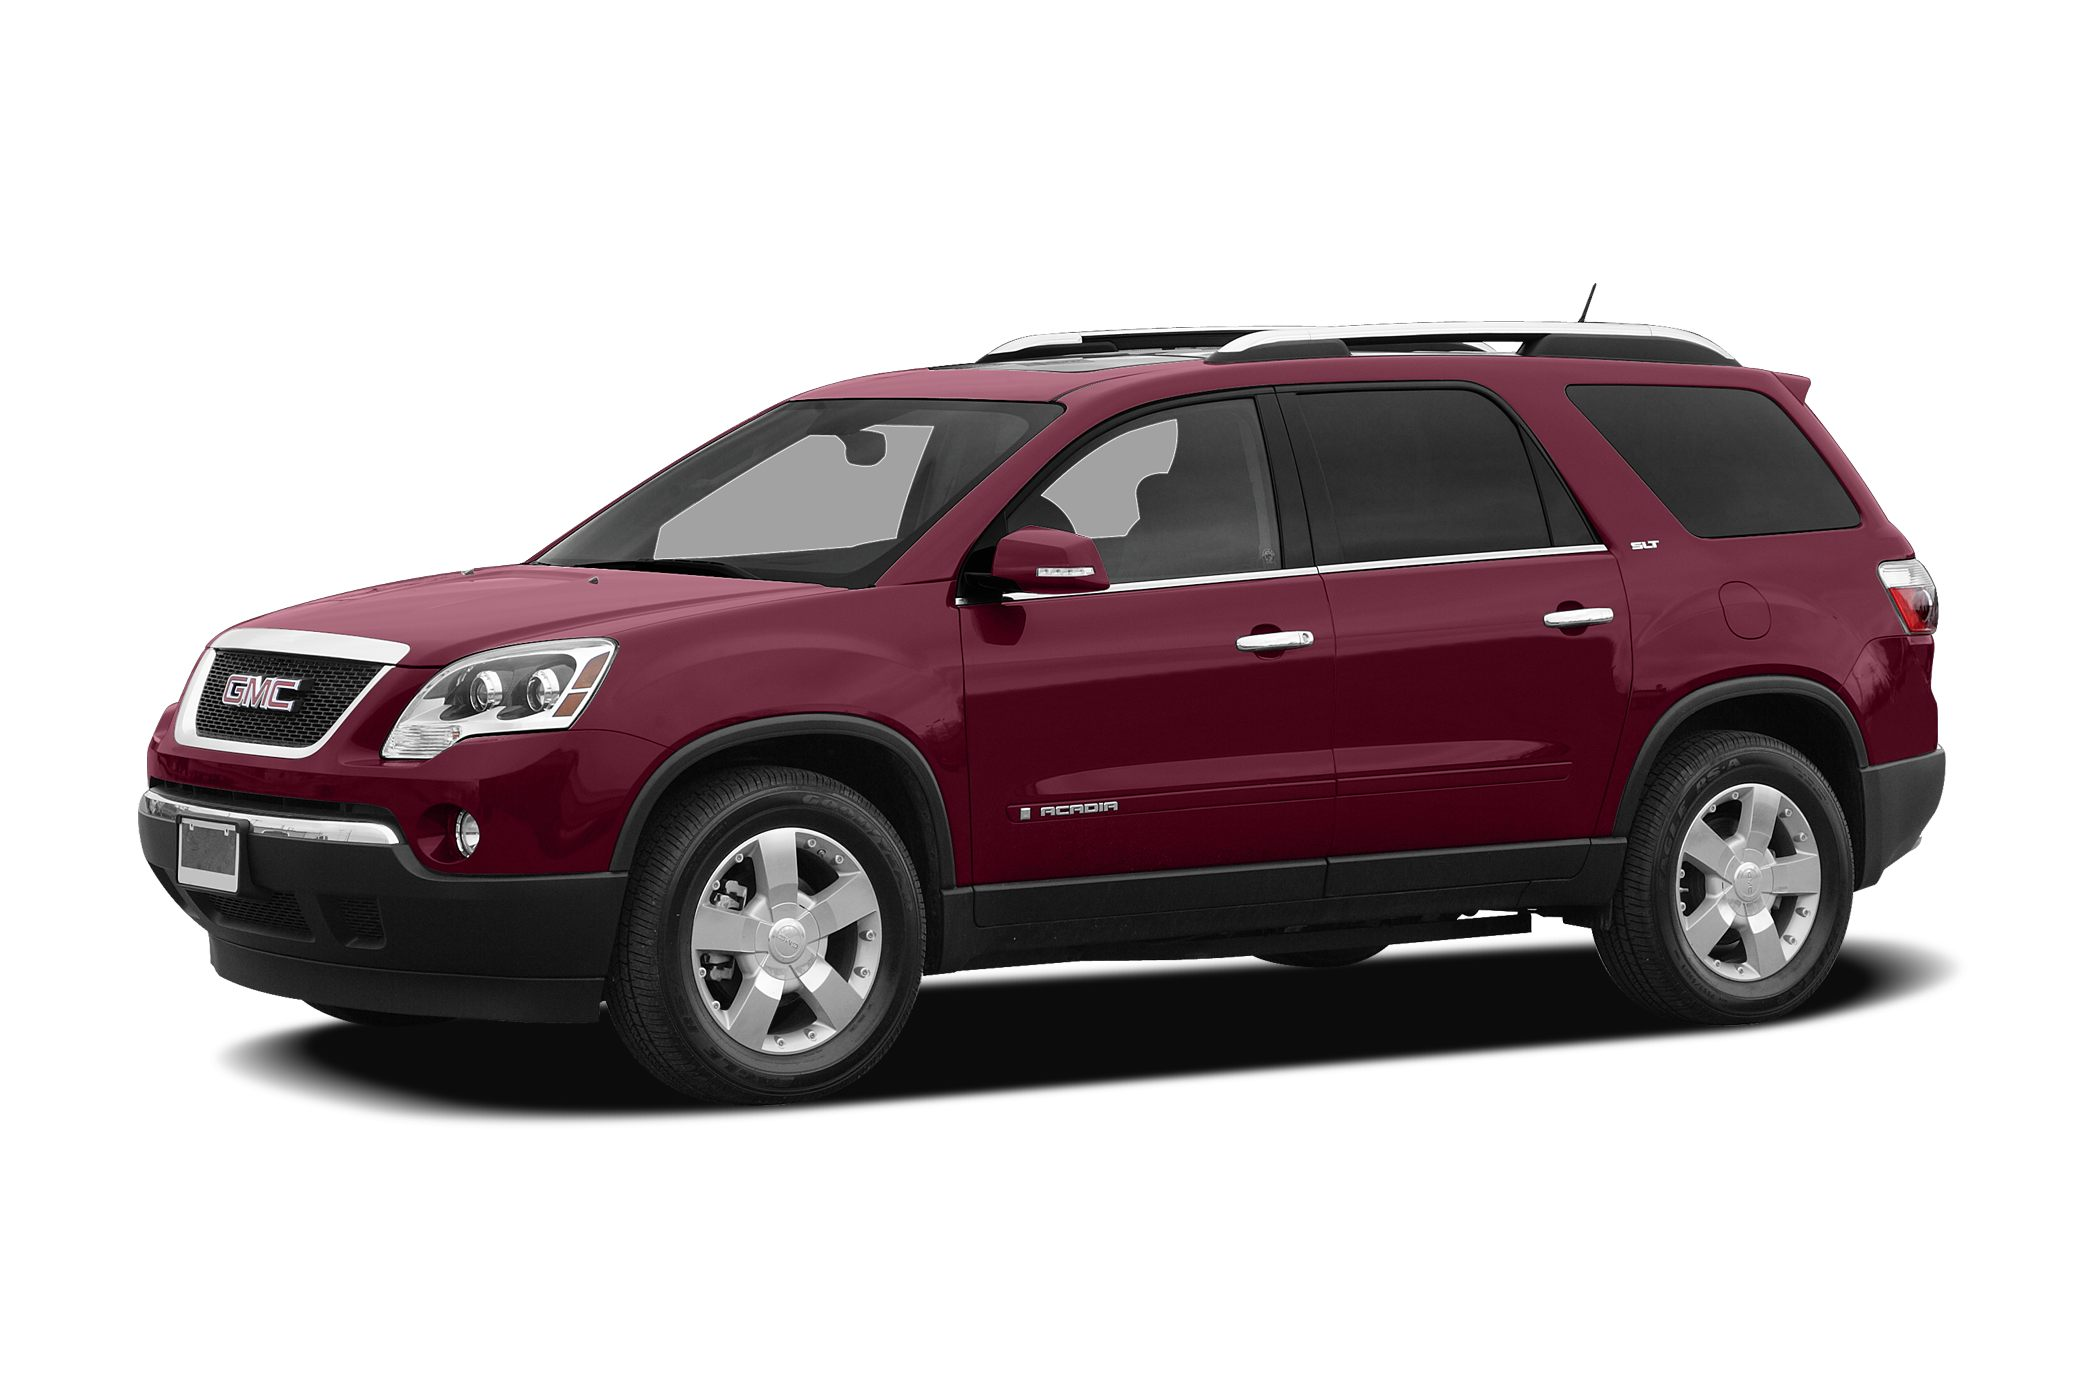 2008 GMC Acadia SLT-1 10 MINUTE CREDIT CHECK BAD CREDIT NO CREDIT NO PROBLEM USA AUTO  TRUCK